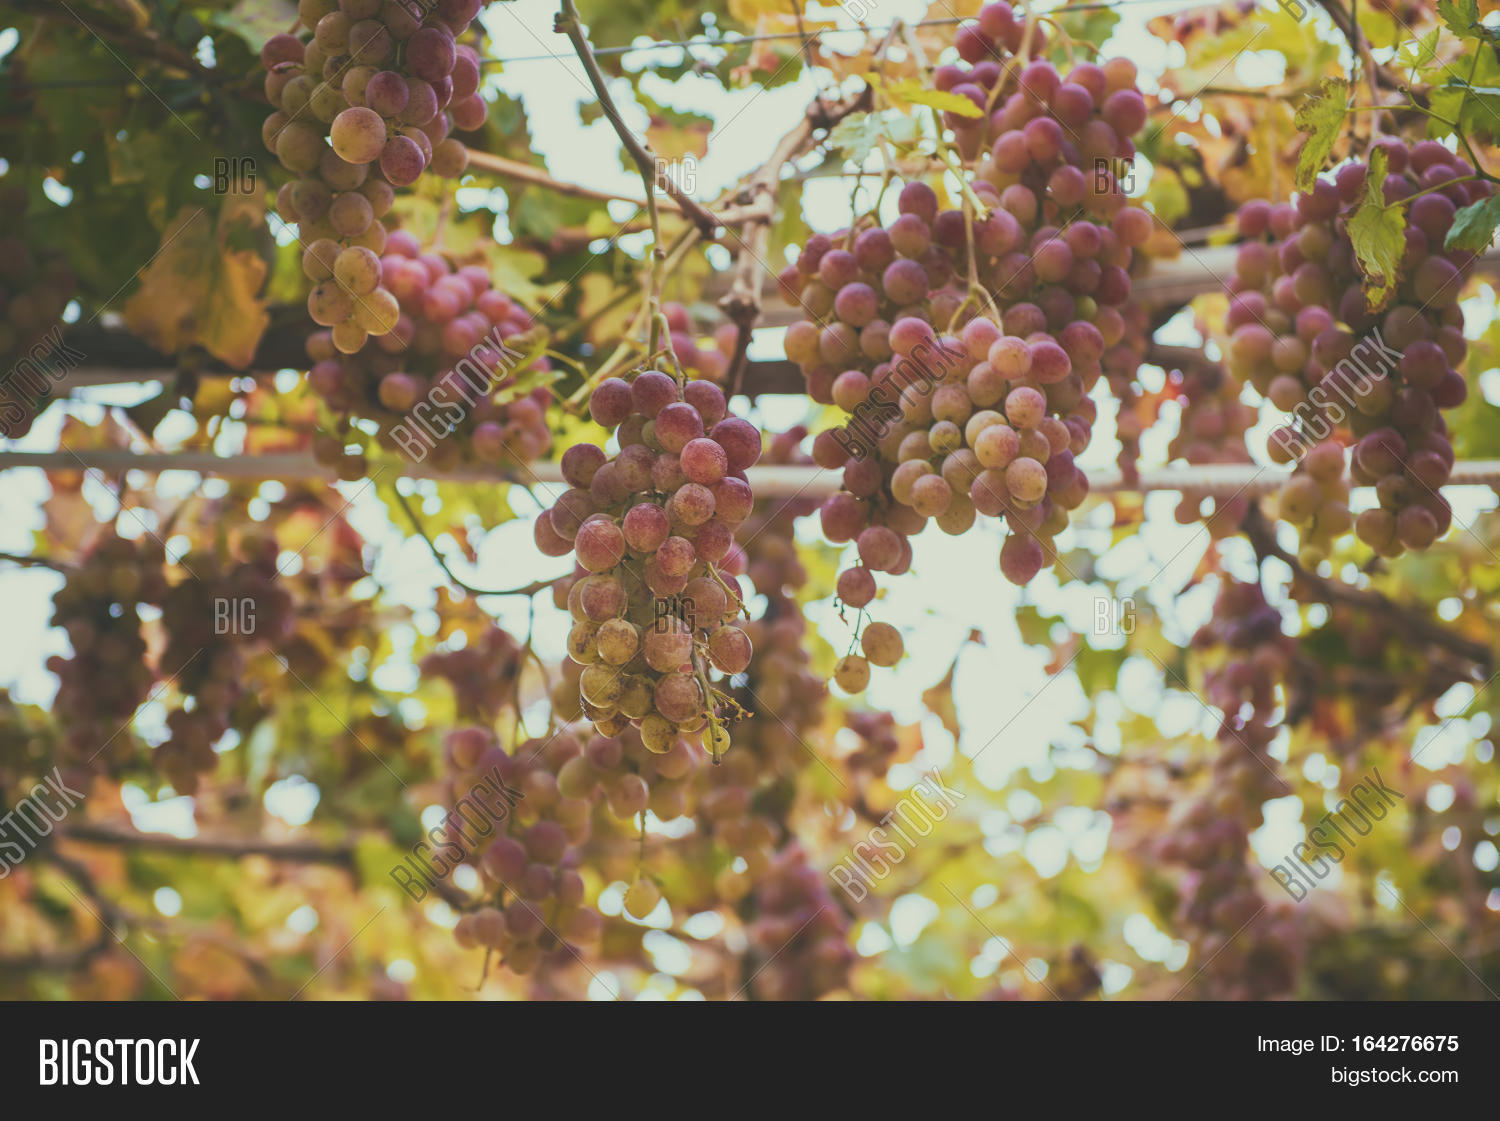 Clusters Fresh Ripe Image & Photo (Free Trial) | Bigstock